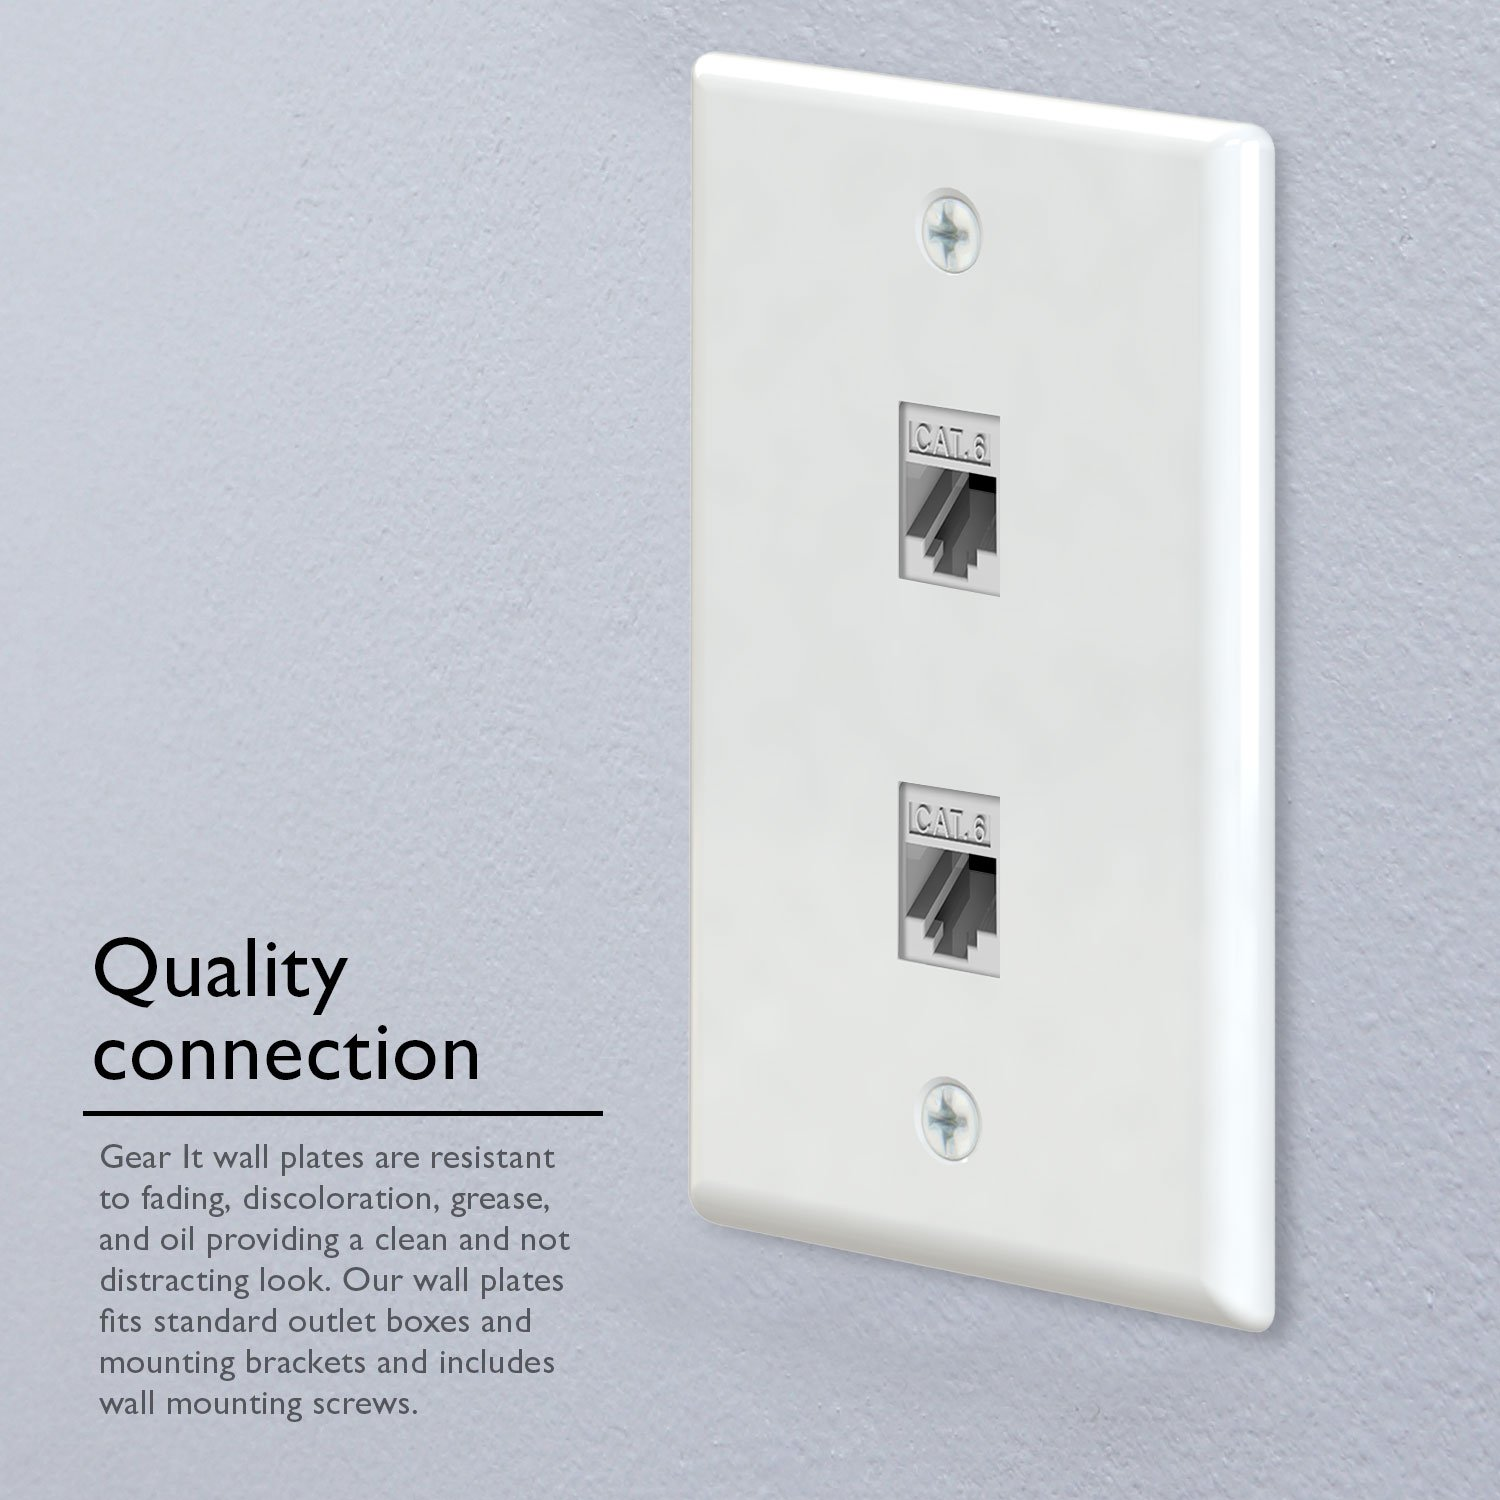 Perfect Cat 6 Wall Plates Illustration - Best Images for wiring ...